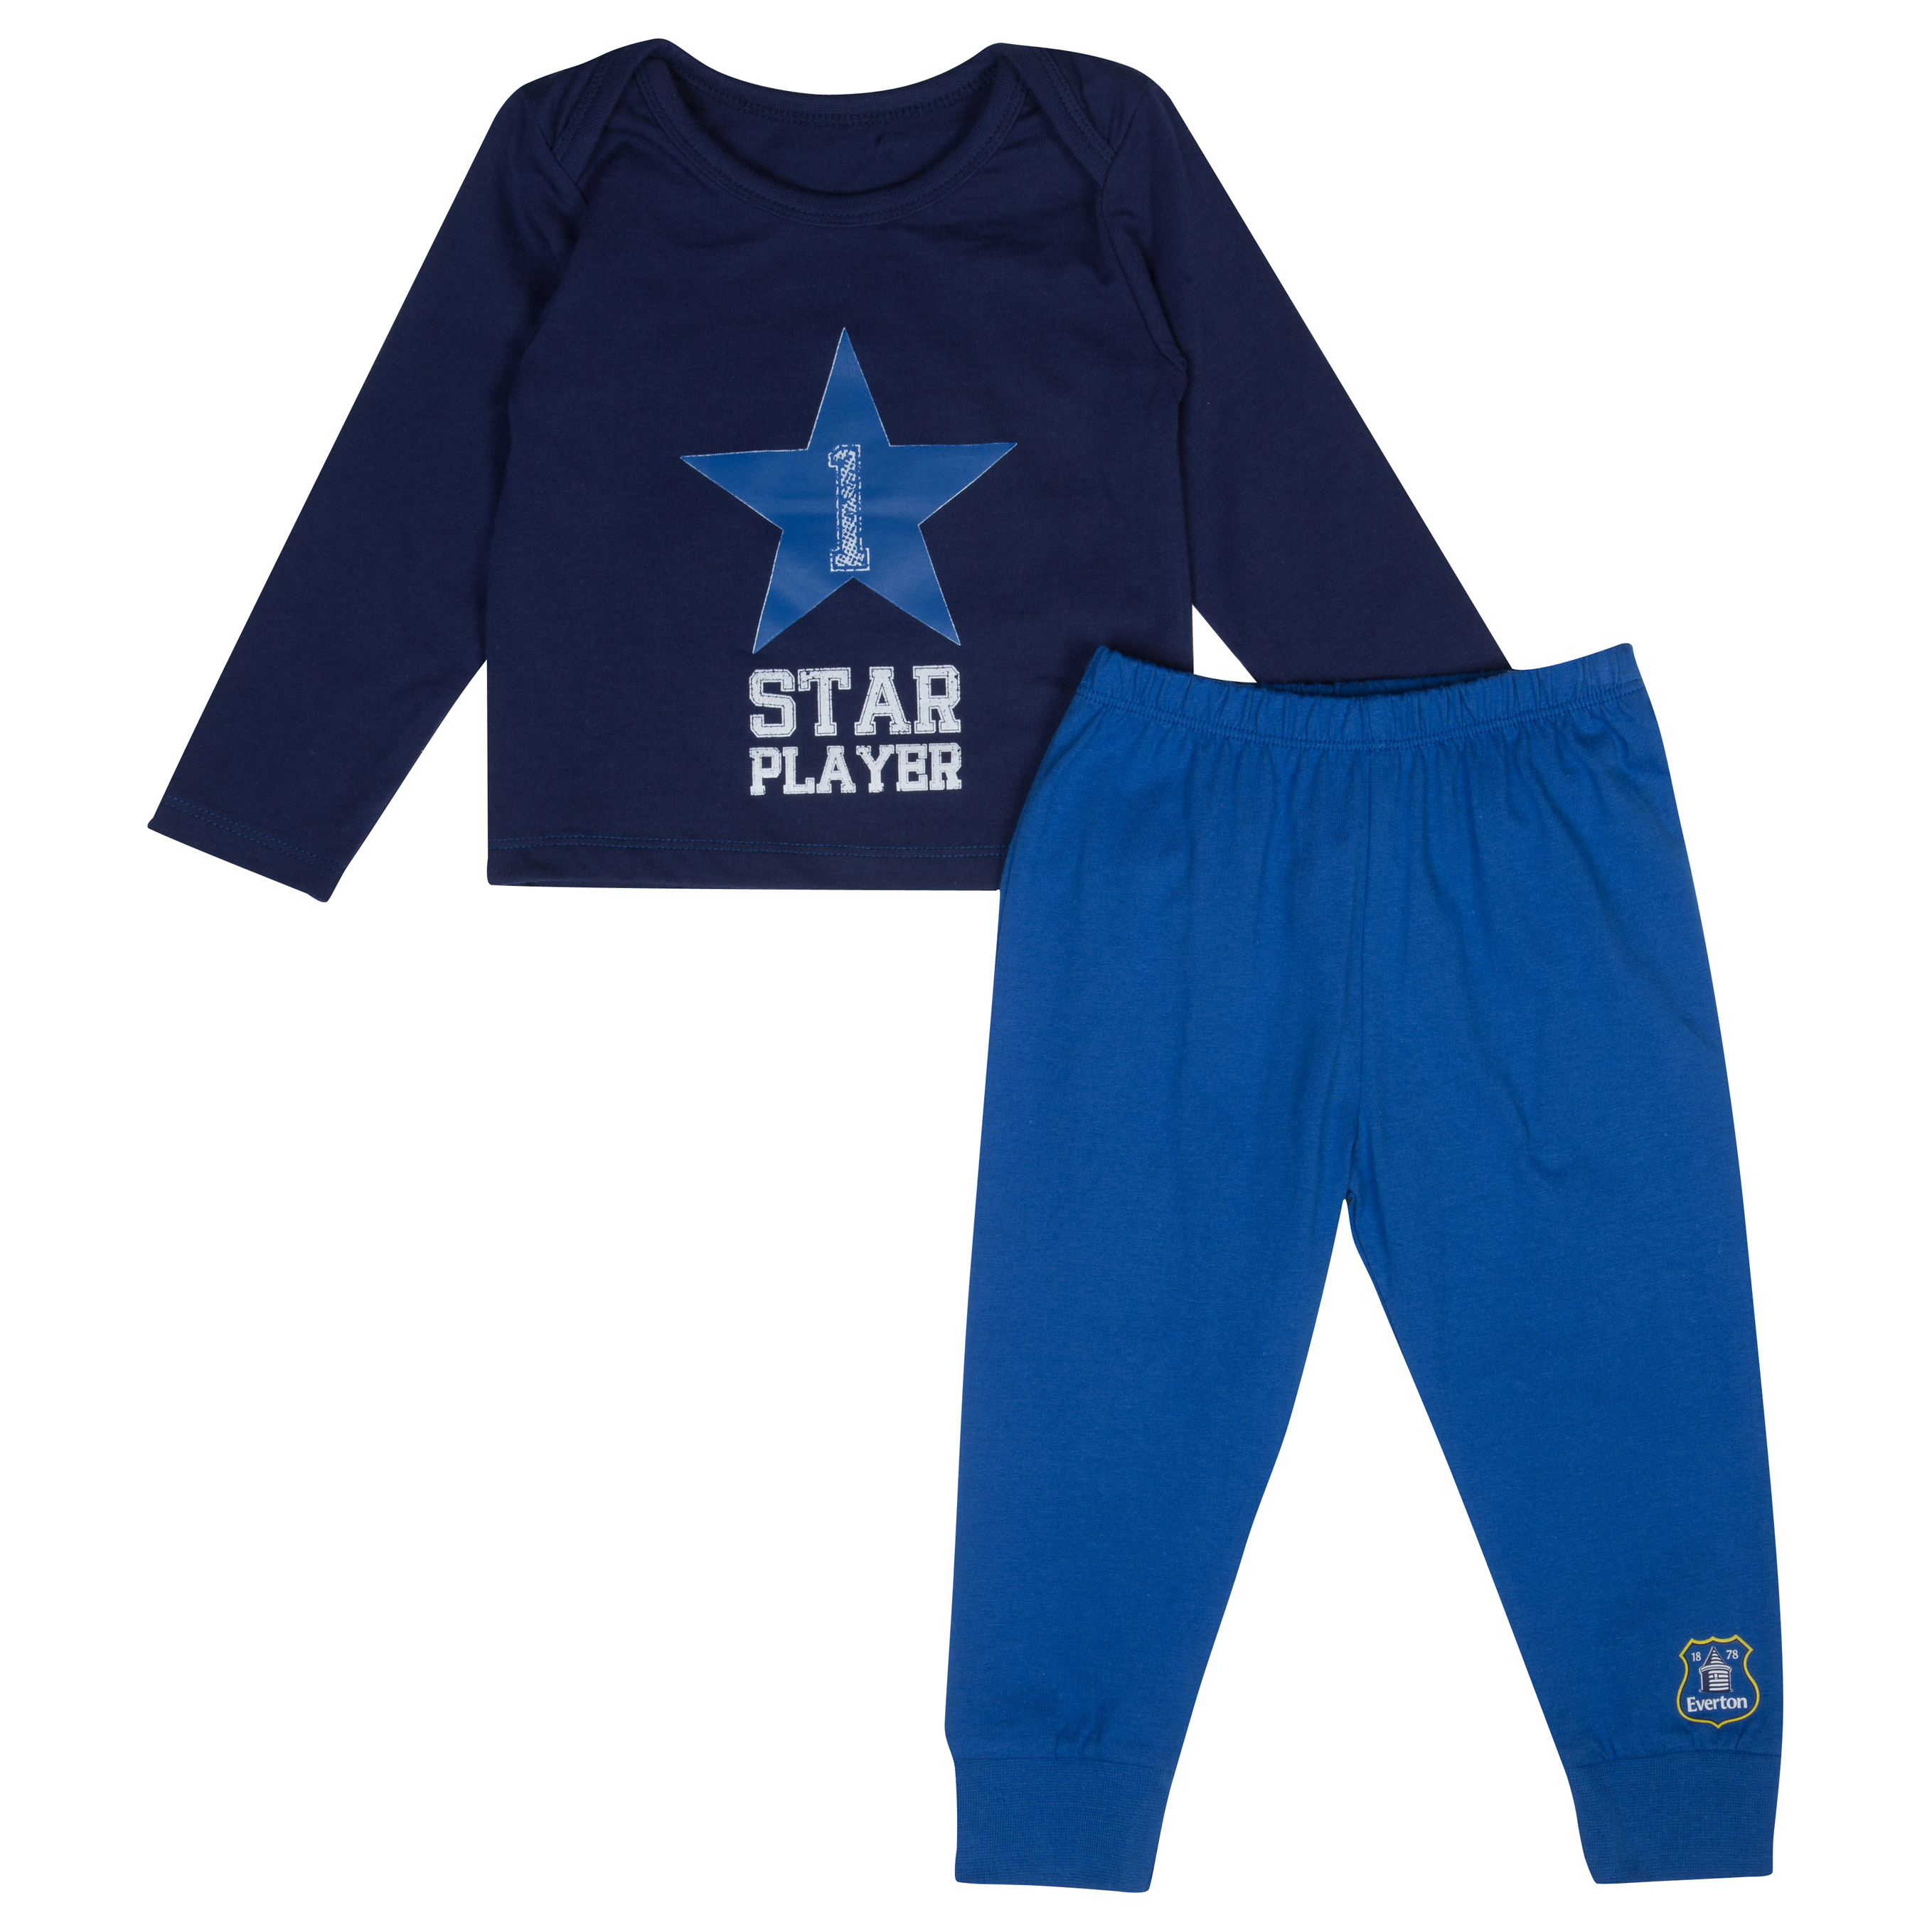 Everton Star 2 Piece Set - Navy/Everton Blue - Baby